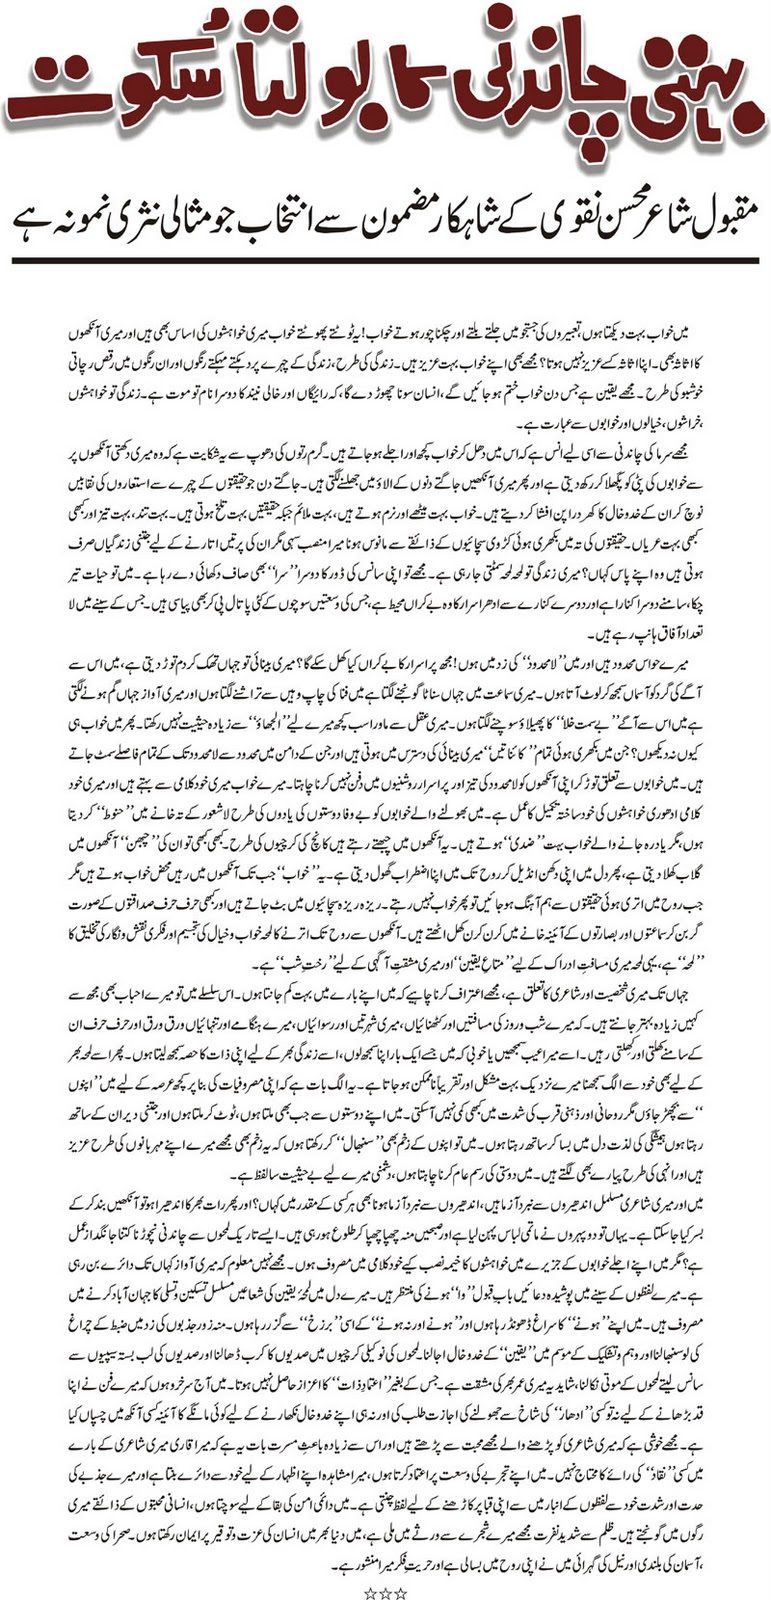 the secret life of aftab chaudhry essay On the issue of former chief justice iftikhar chaudhry, shahbaz claimed that the pml-n was open to negotiation.